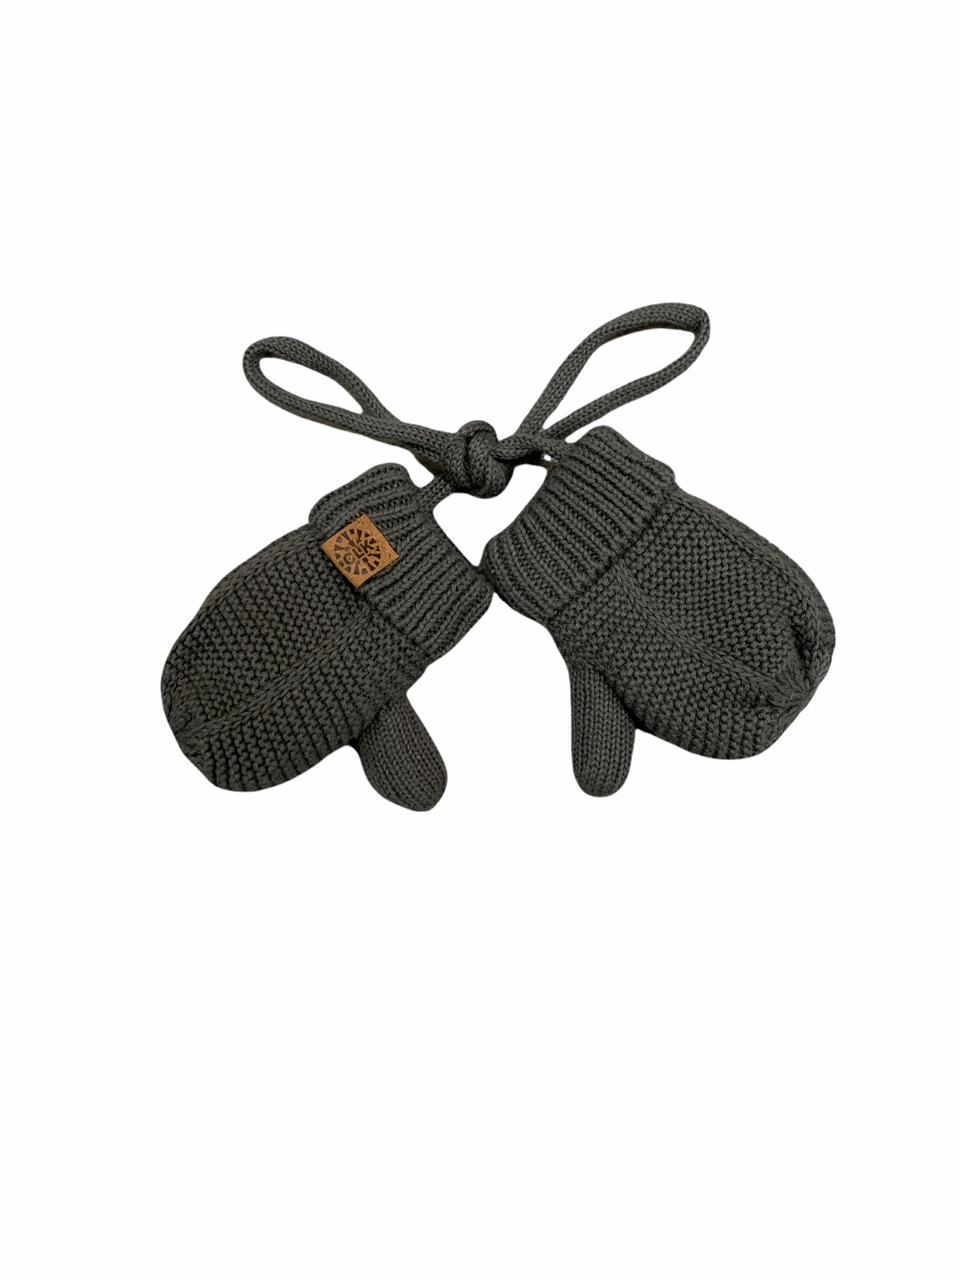 Cotton Knit Mittens with String - Charcoal